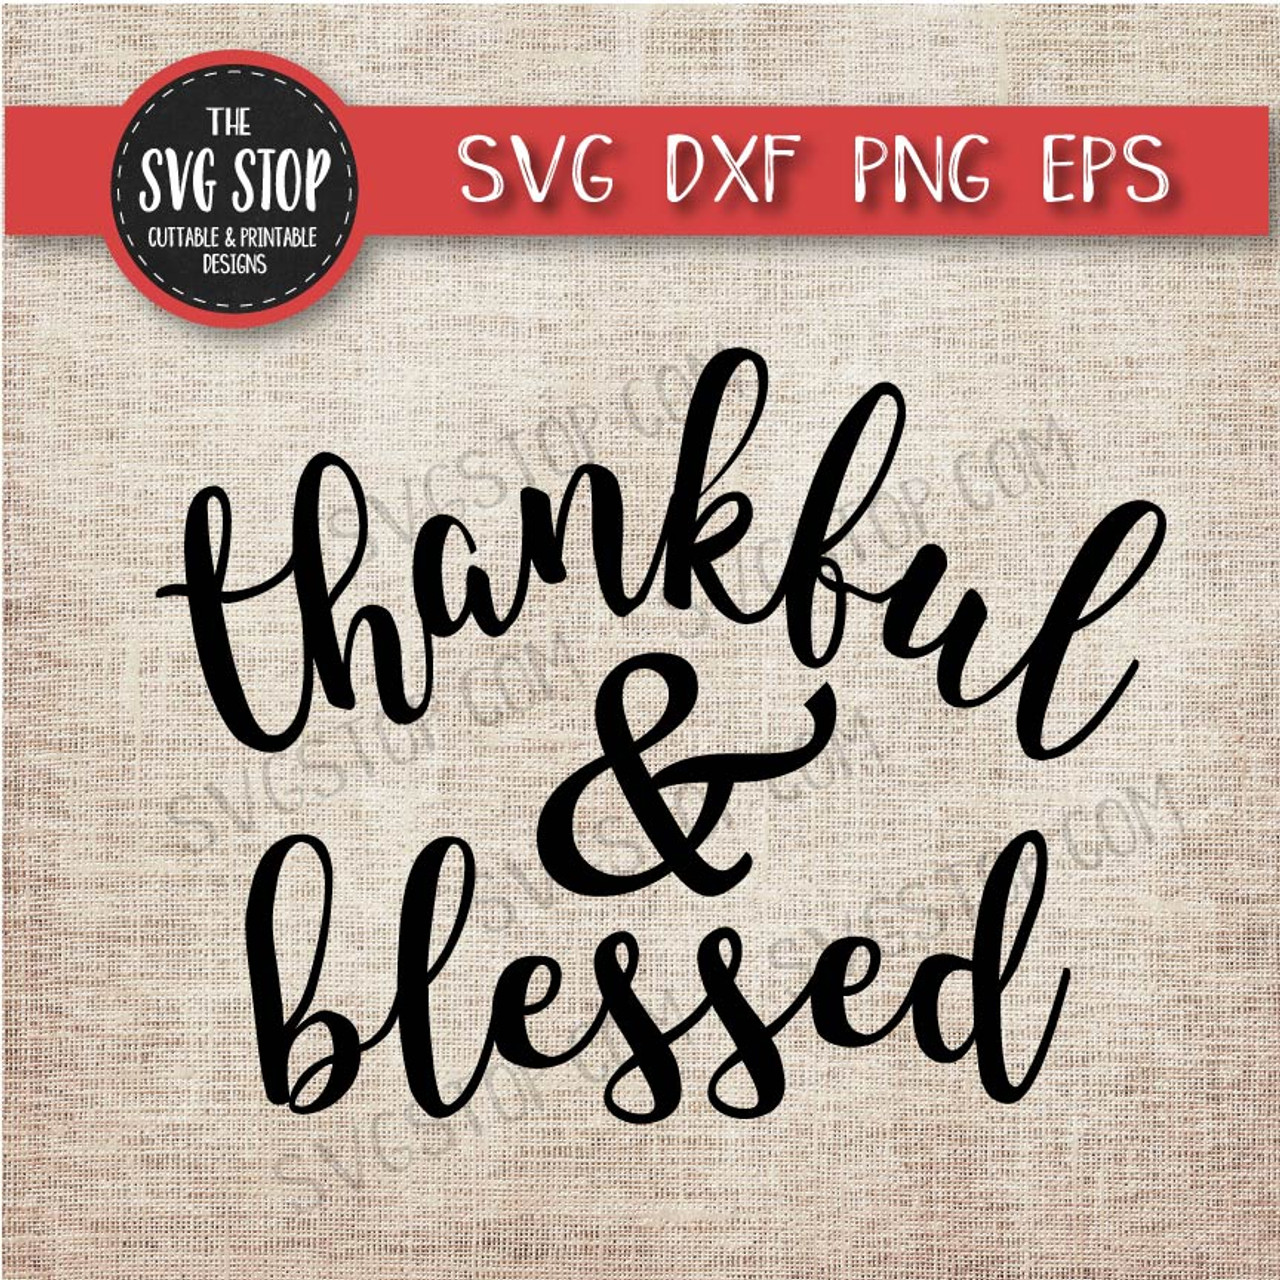 Thankful And Blessed Design The Svg Stop